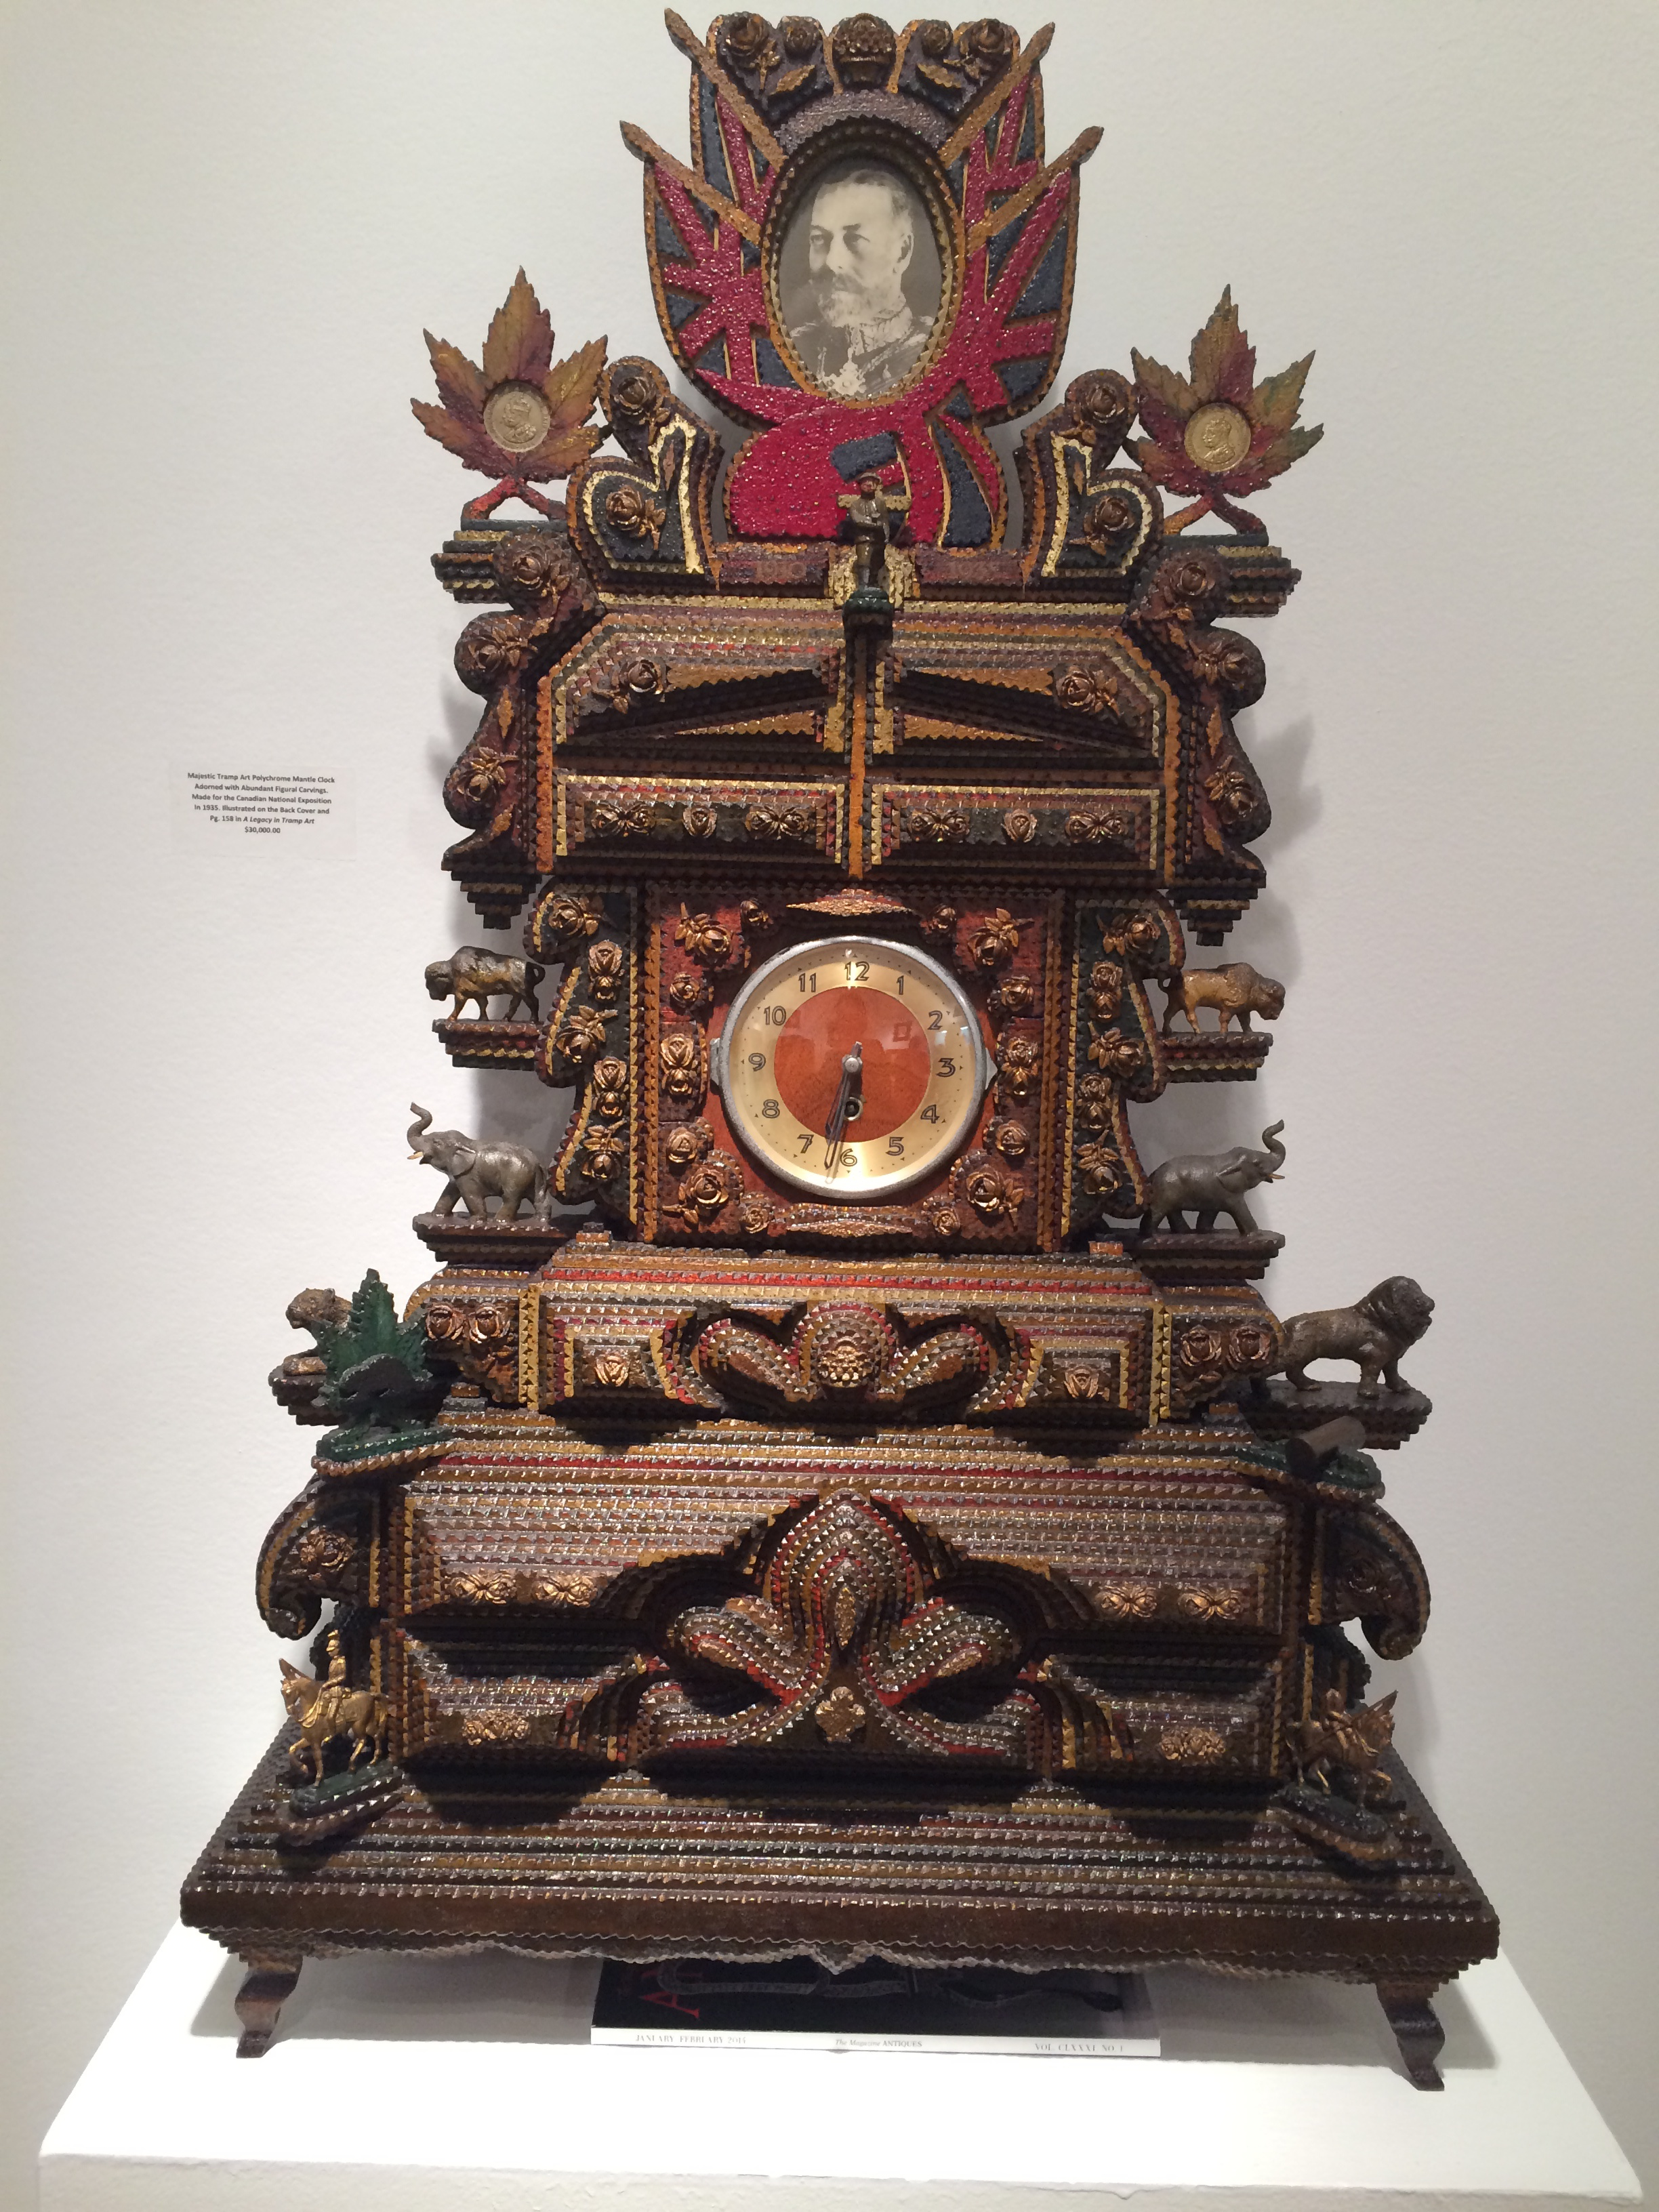 Tramp Art Polychrome Mantle Clock Adorned with Abundant Figural Carvings. Made for the Canadian National Exposition in 1935.